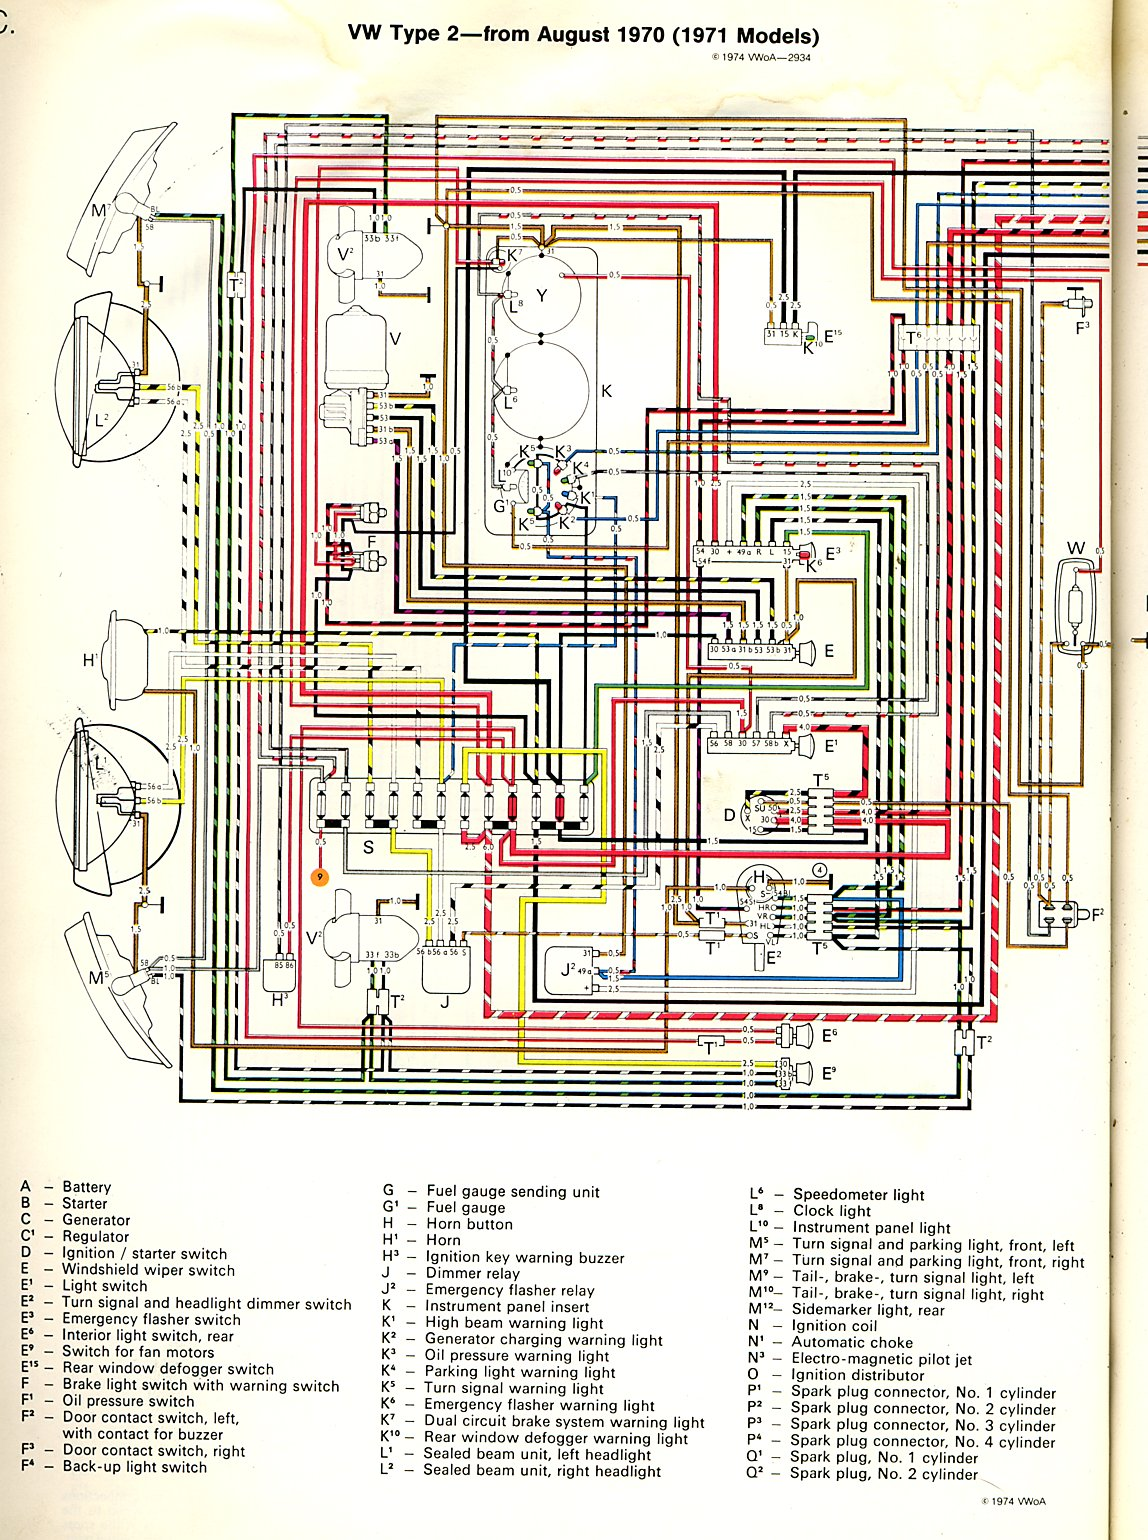 baybus_71a thesamba com type 2 wiring diagrams 1971 Chevy Truck Wiring Diagram at gsmx.co